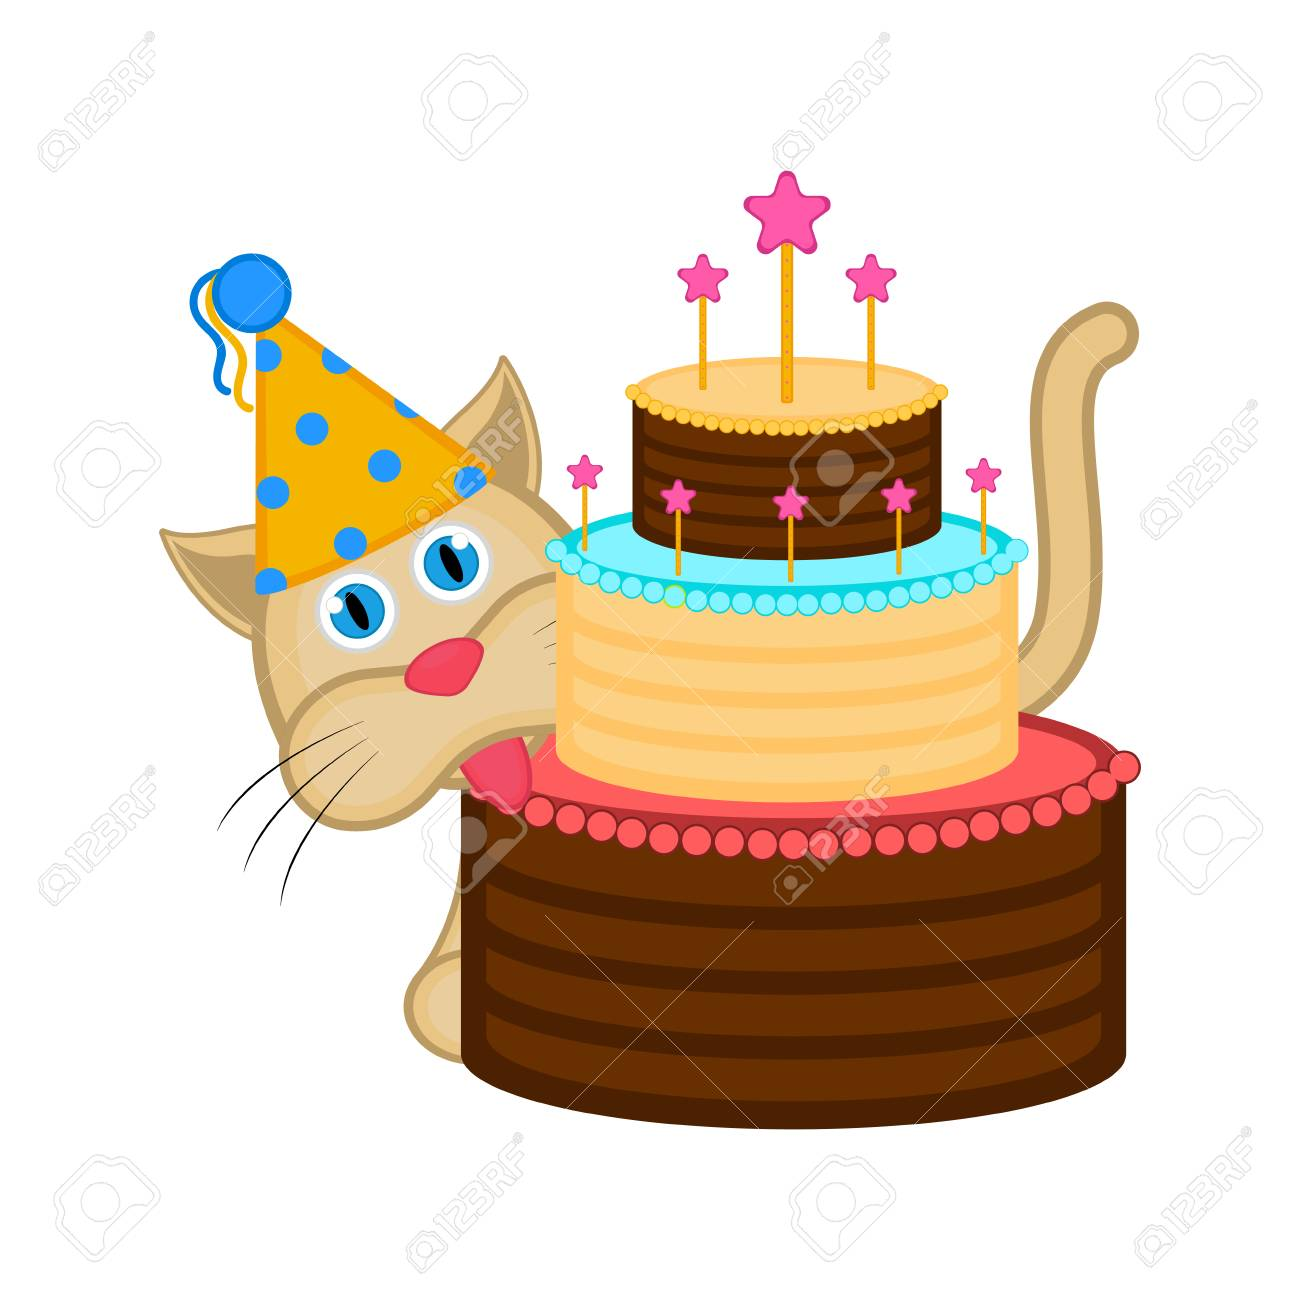 Cute Cat With A Party Hat And Cake Happy Birthday Vector Illustration Design